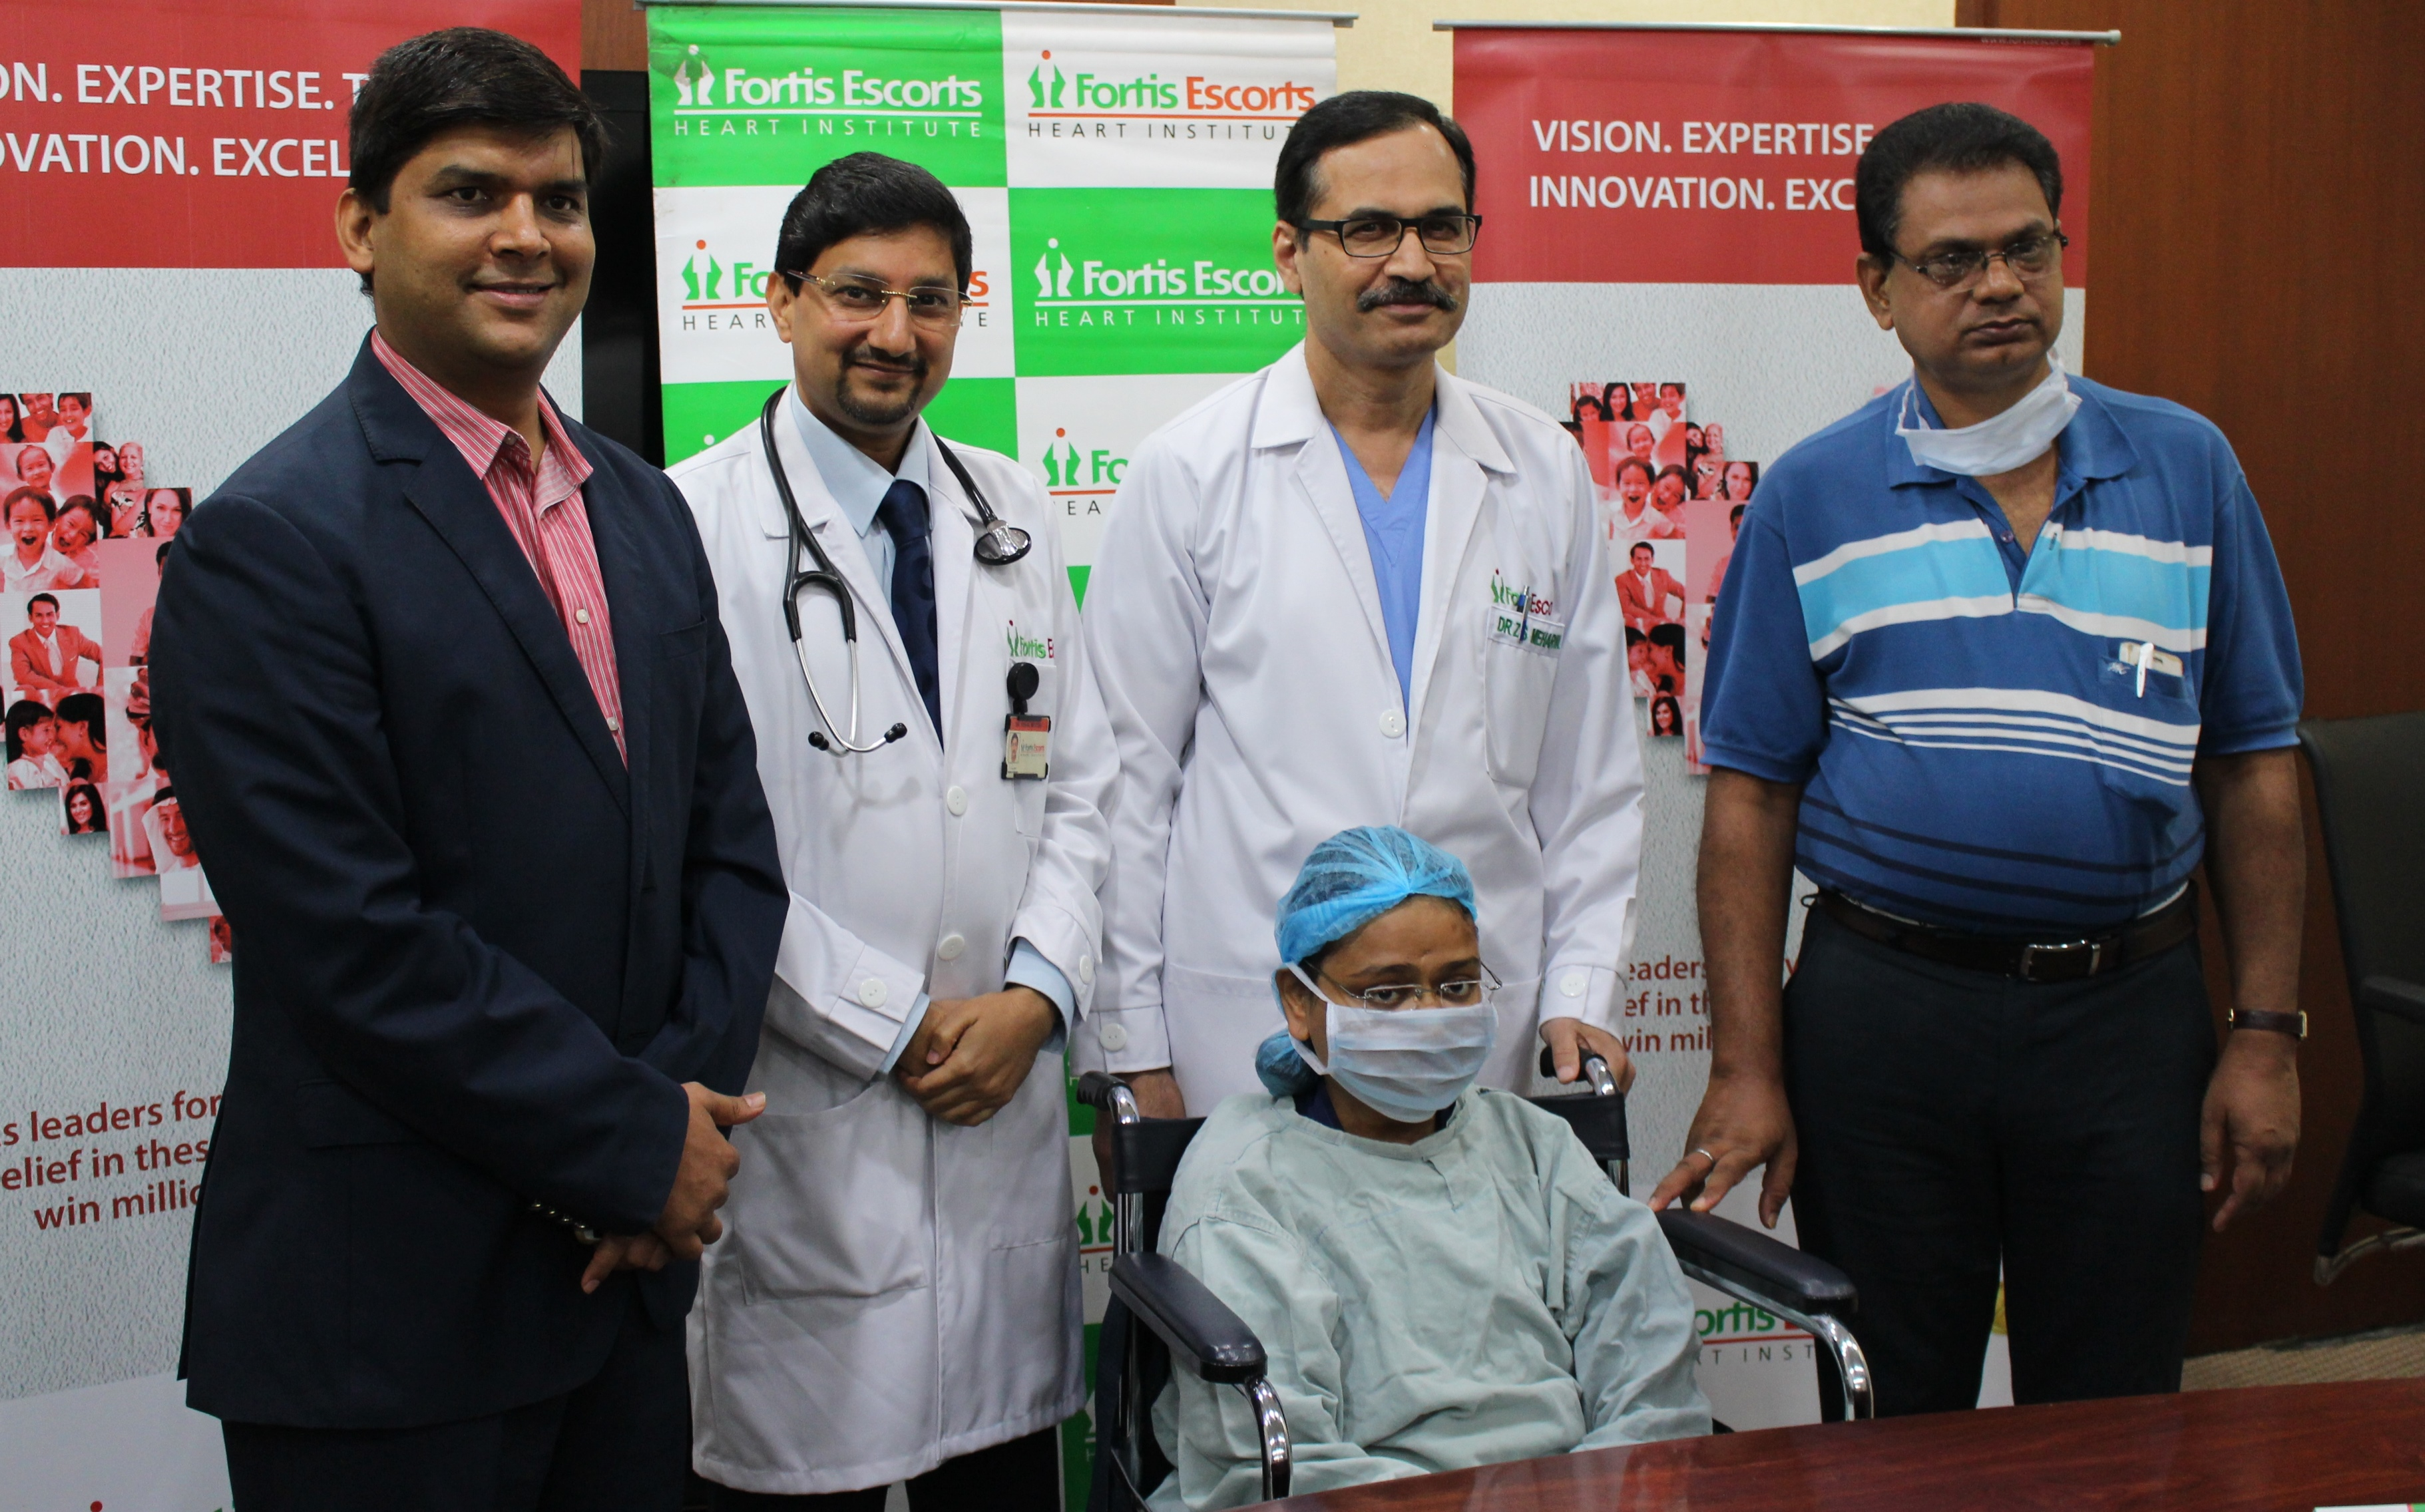 Heart Transplant at Fortis Escorts gives 23 year old a new life